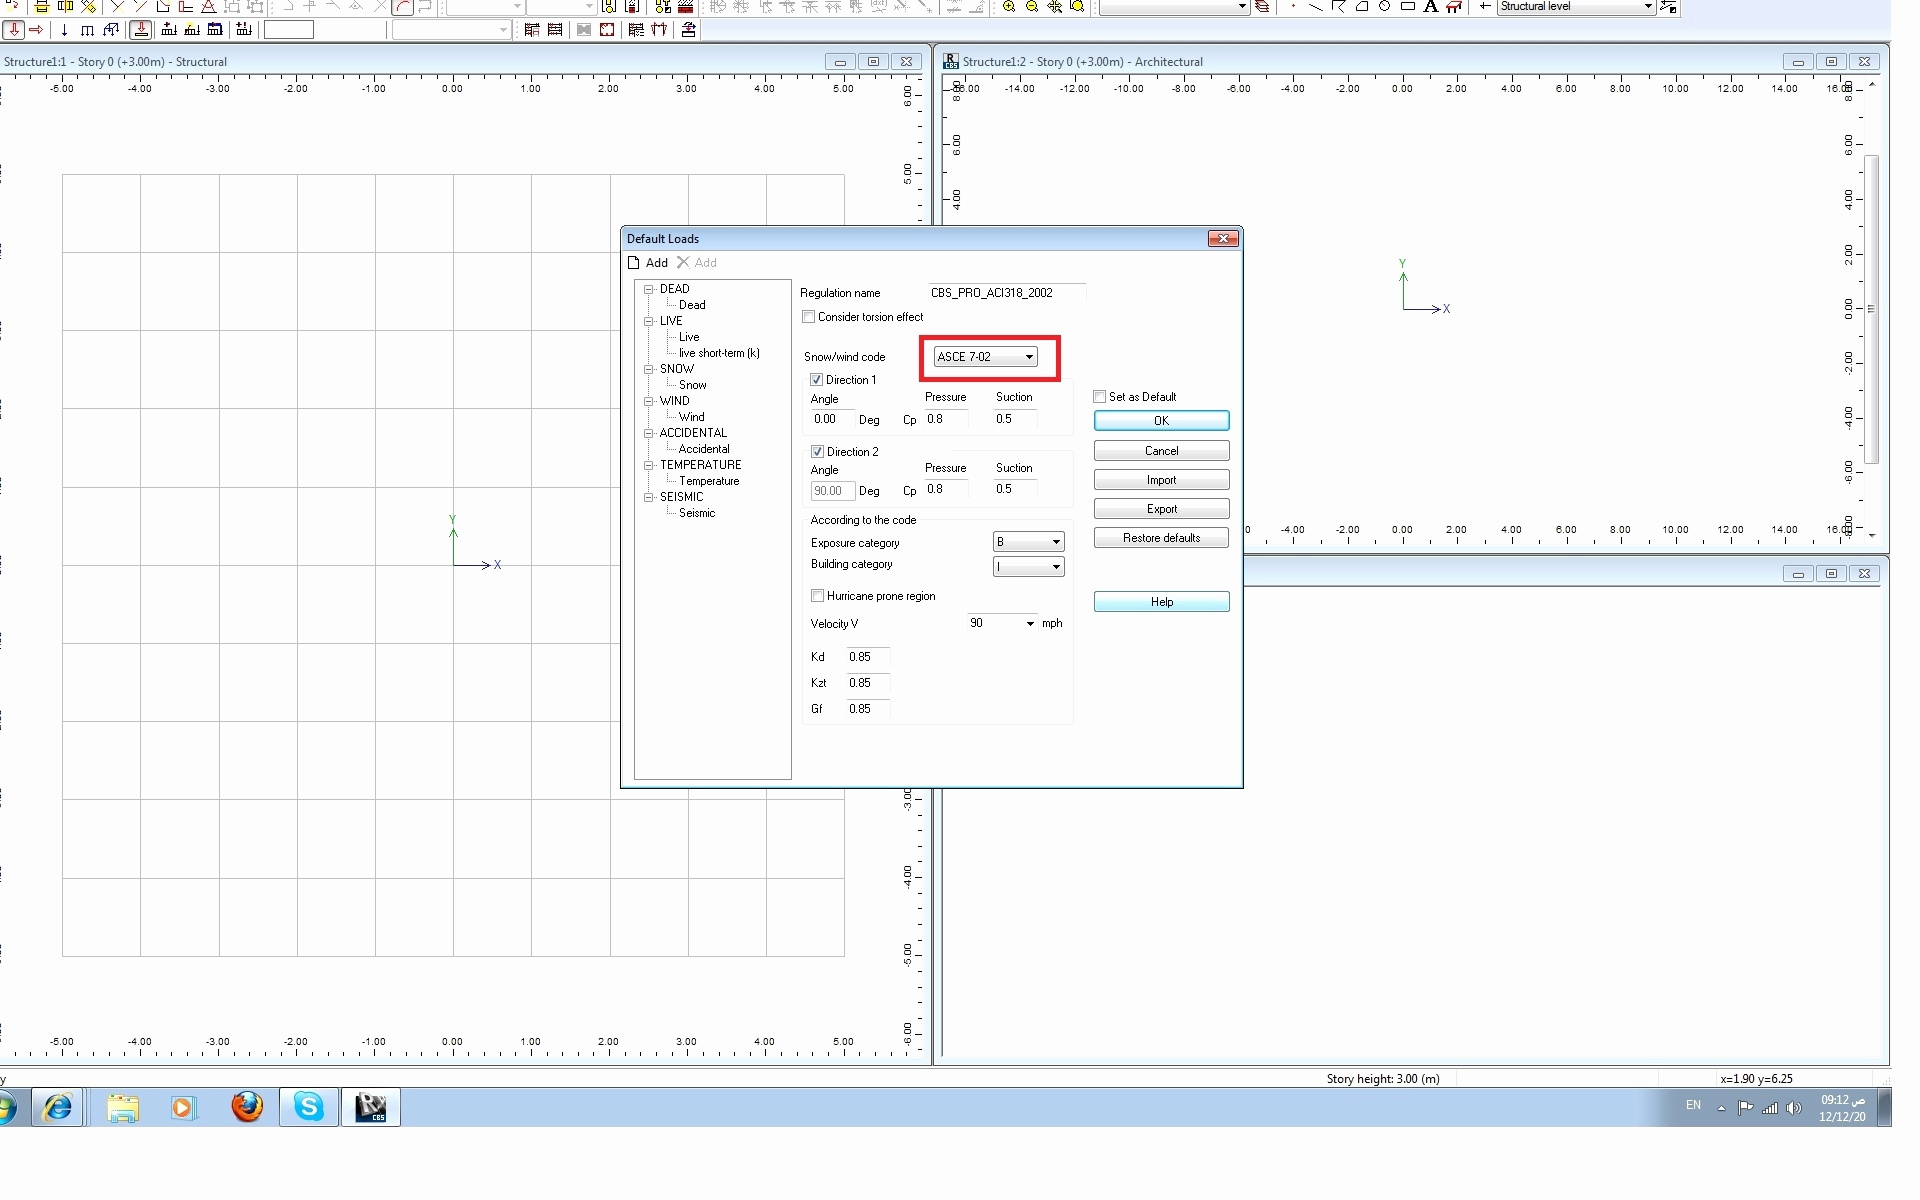 Excel Engineering Spreadsheets In Civil Engineering Spreadsheets Best Of 50 Beautiful Wind Load